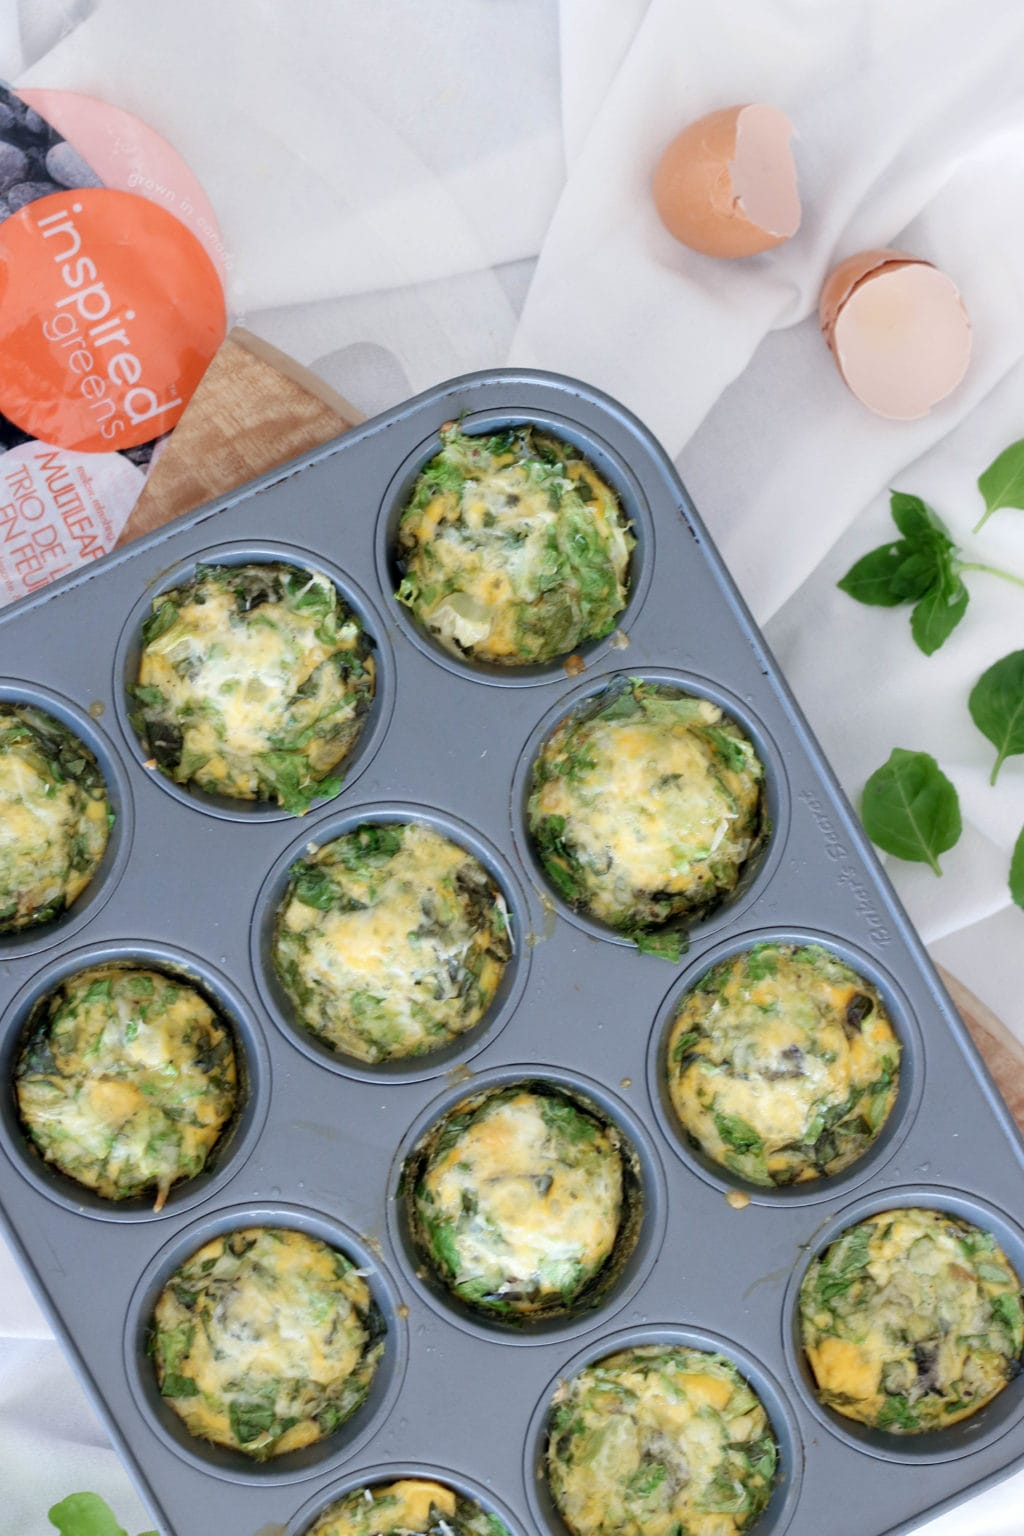 Muffin tin frittatas in a medium sized muffin tin over a white sheet with a bag of inspired greens beside it and a cracked egg. Ingredients include eggs, butter, greens, basil, cheese.